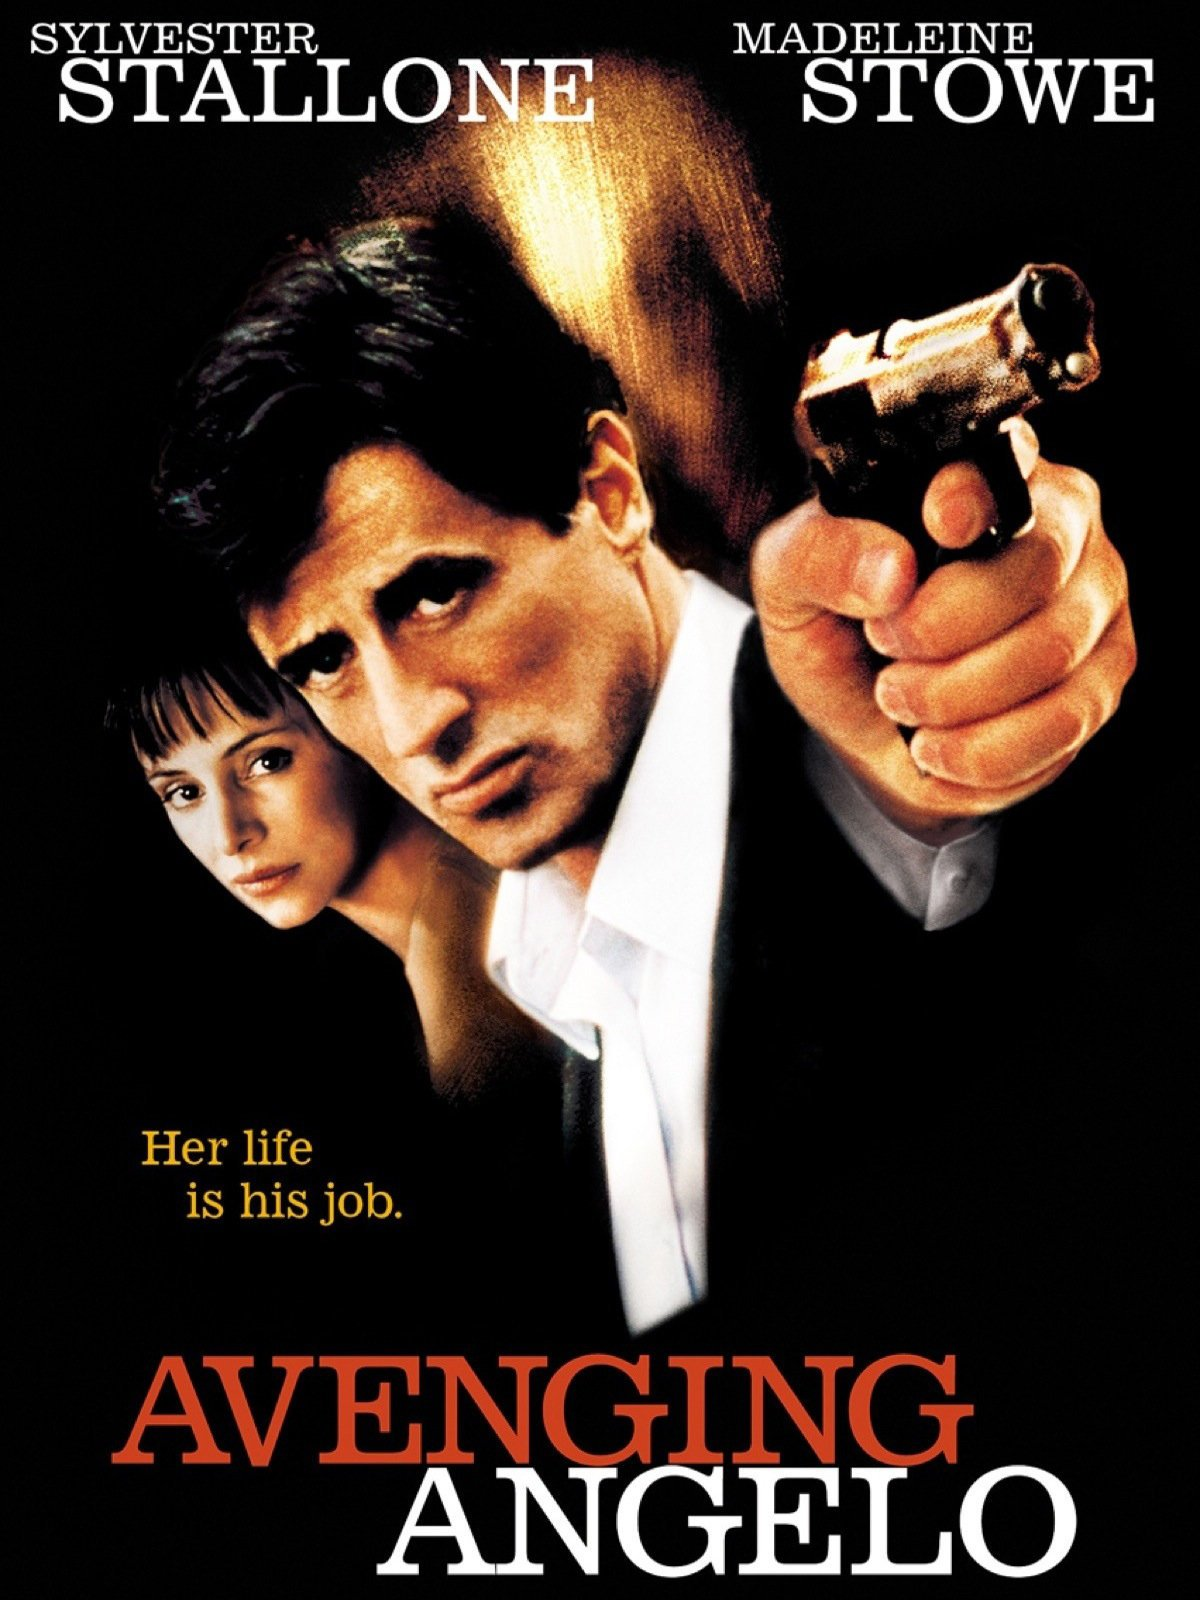 Sylvester Stallone and Madeleine Stowe in Avenging Angelo (2002)